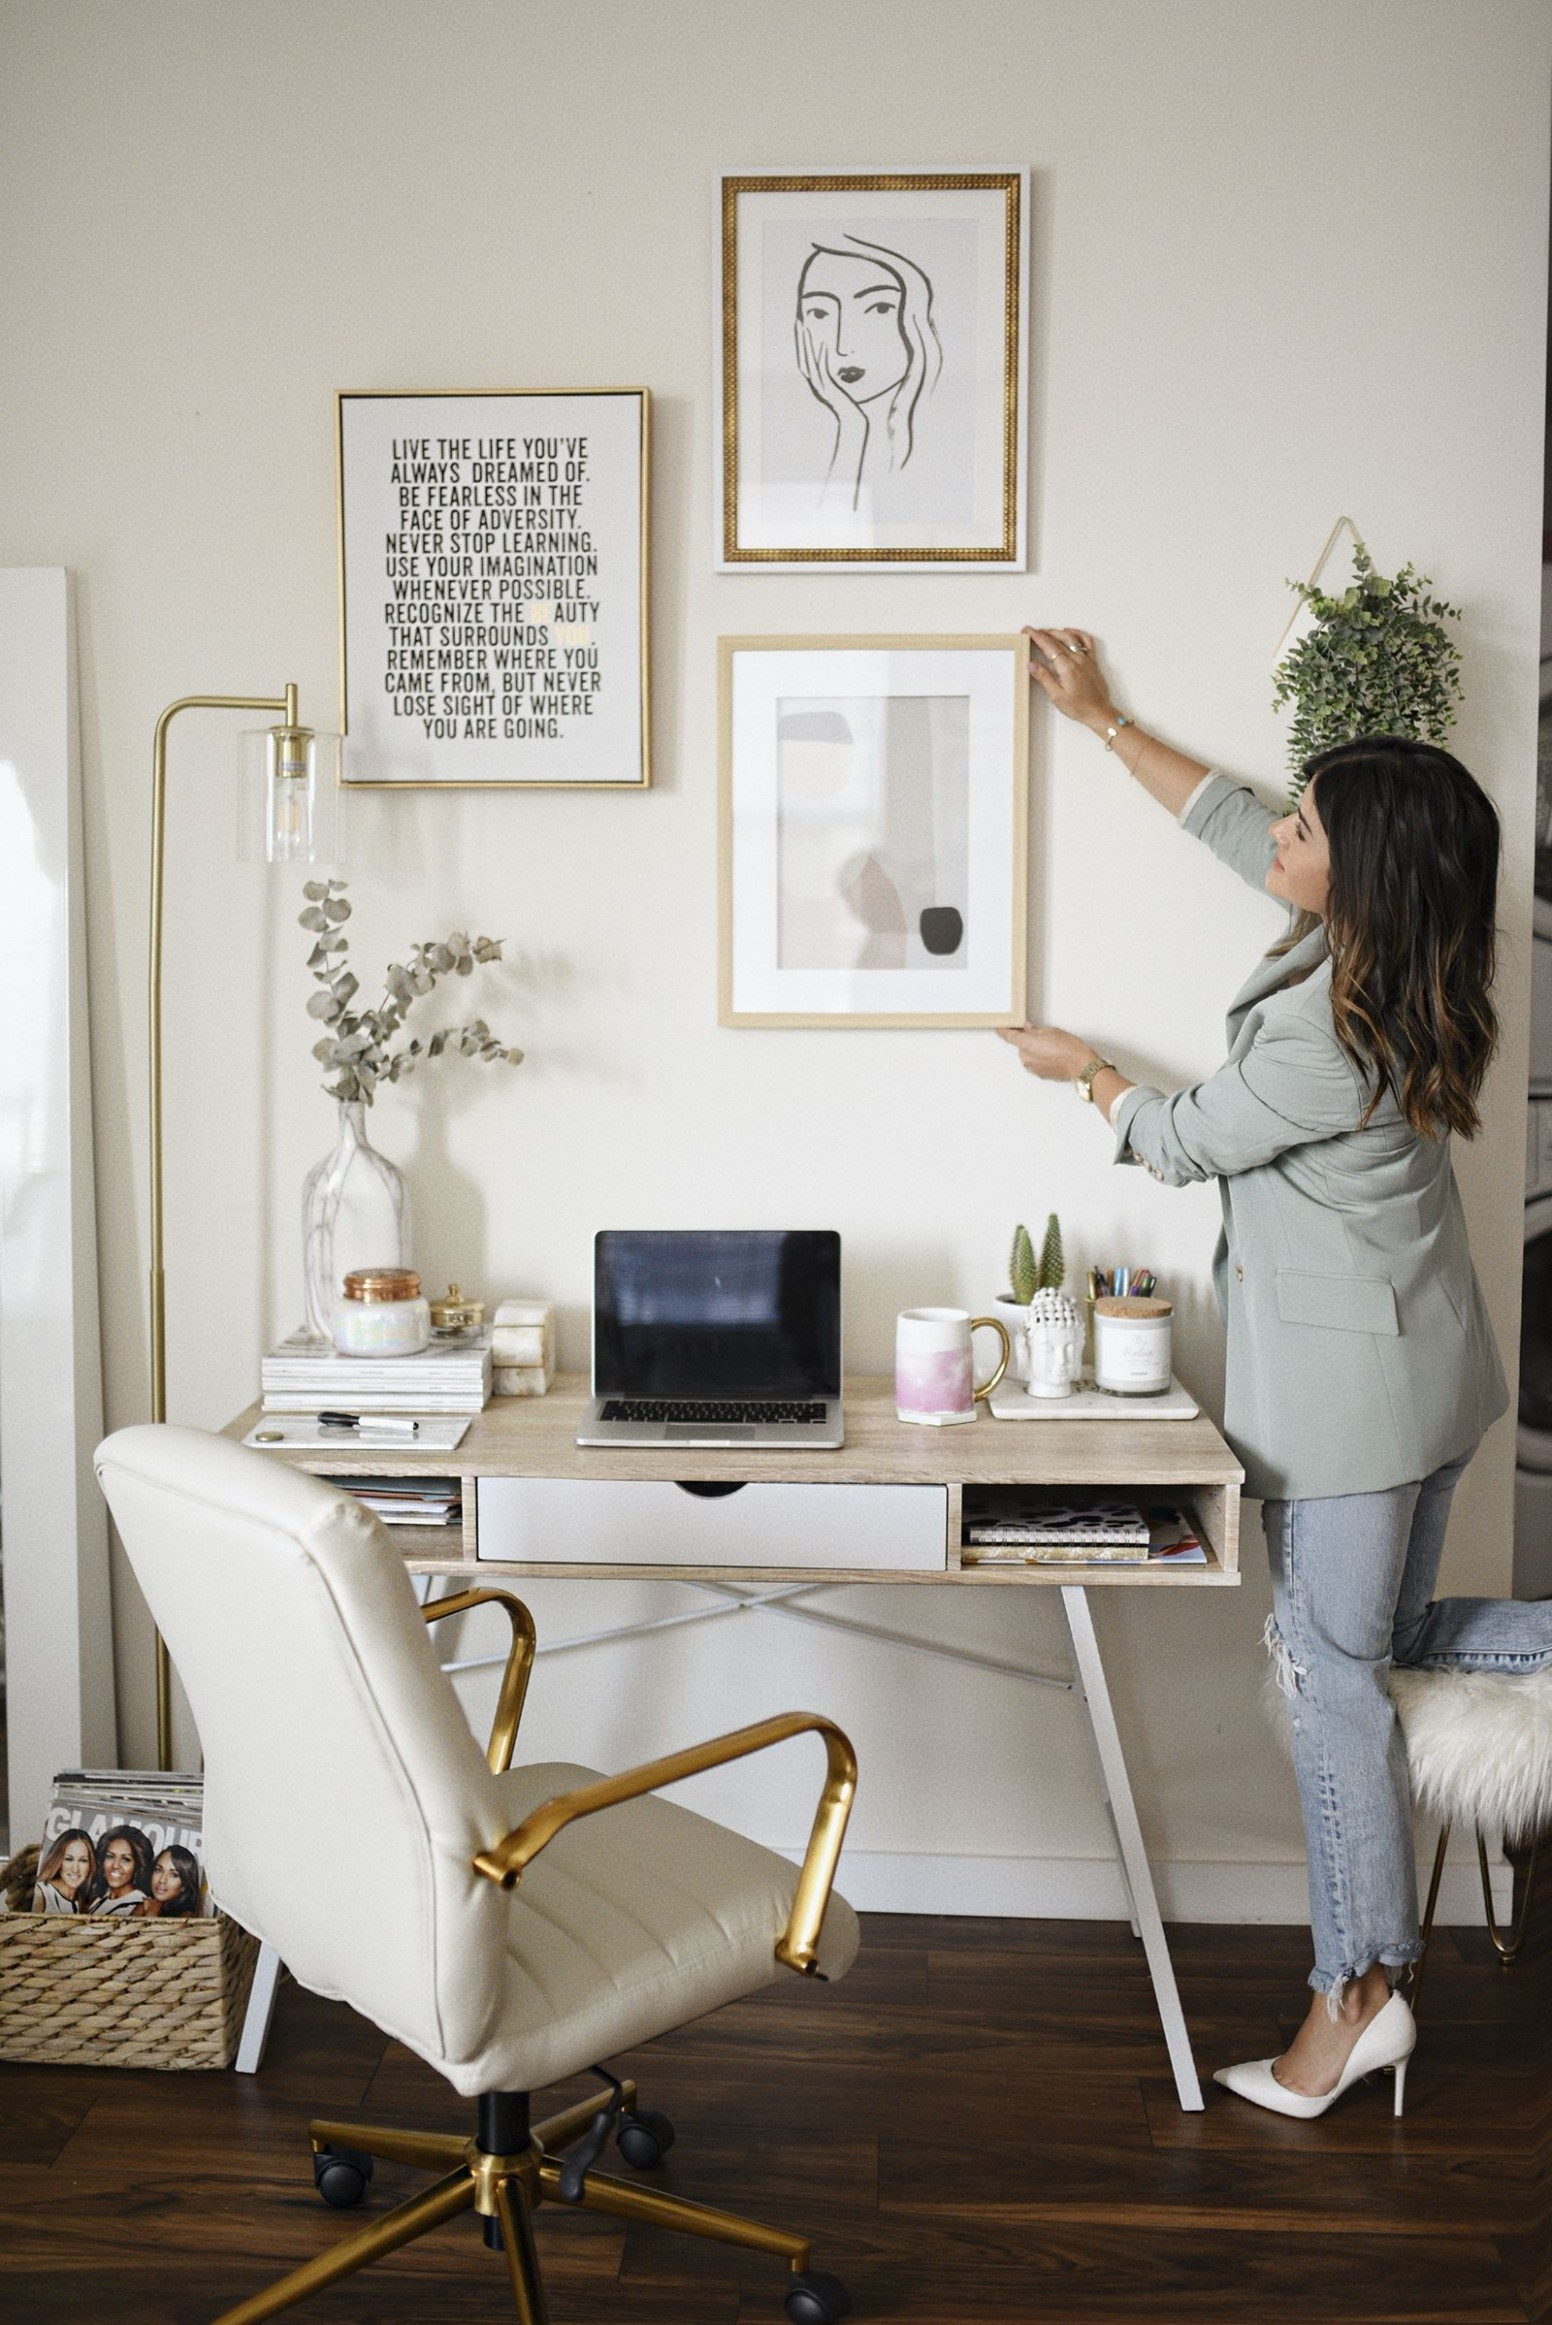 HOME OFFICE DECOR IDEAS  CHIC TALK in 12  Home office setup  - Home Office Accessories Ideas